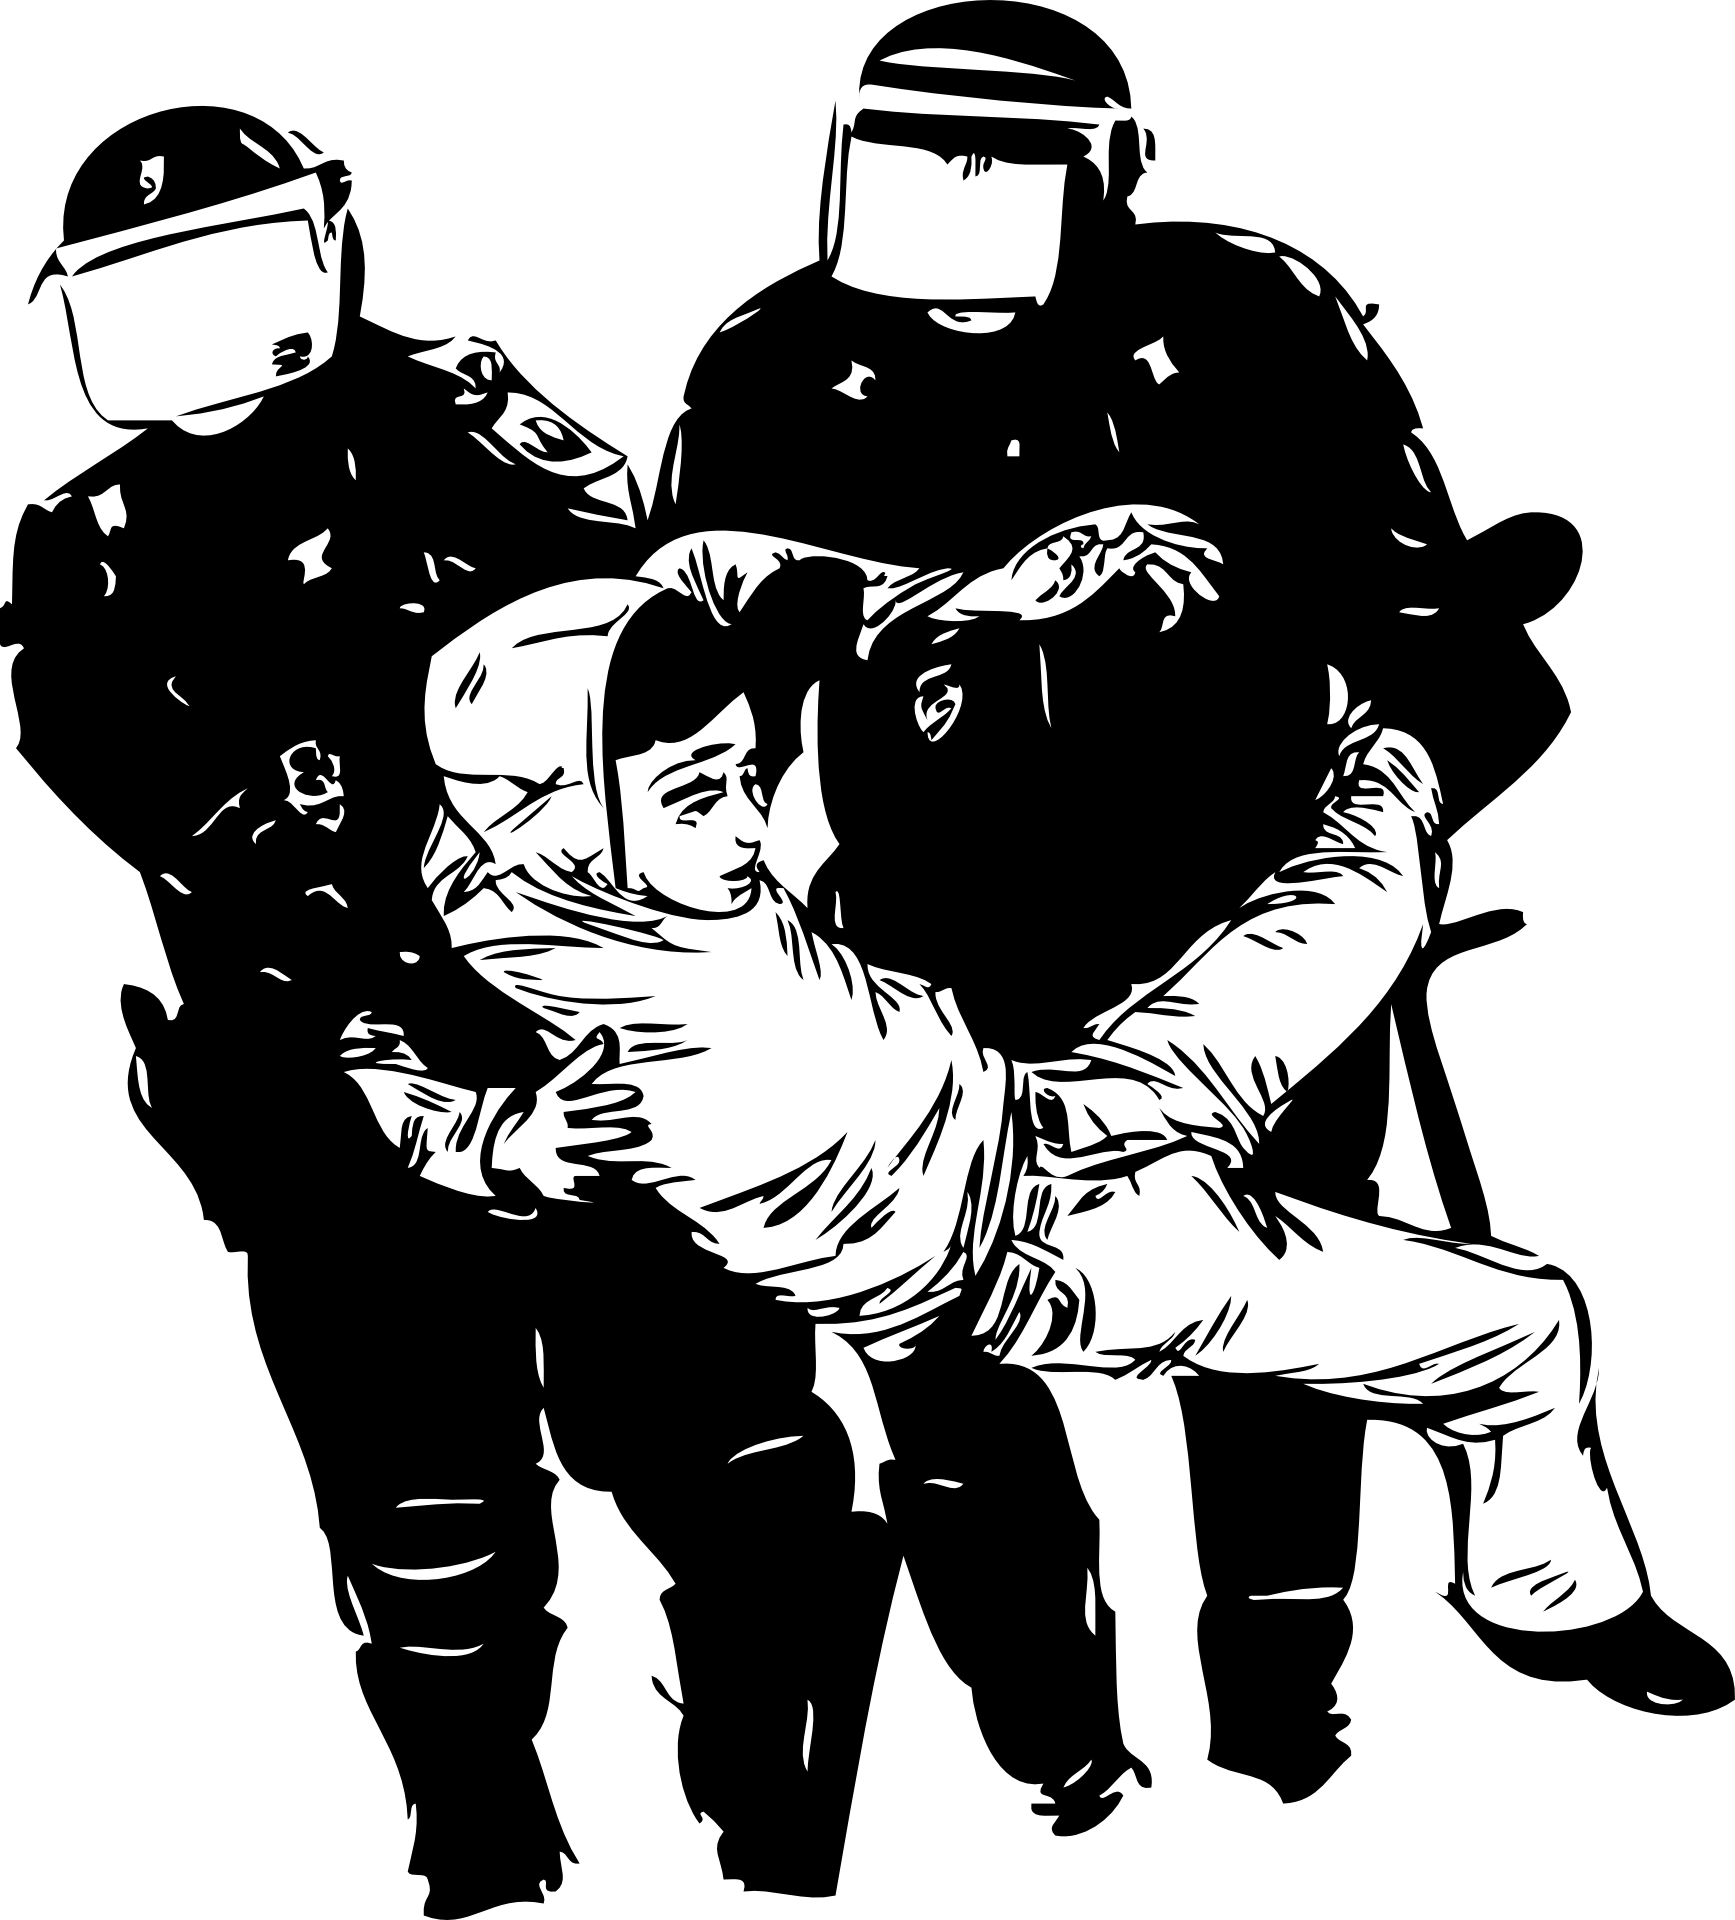 Criminal clipart police. Ethical implications of victim